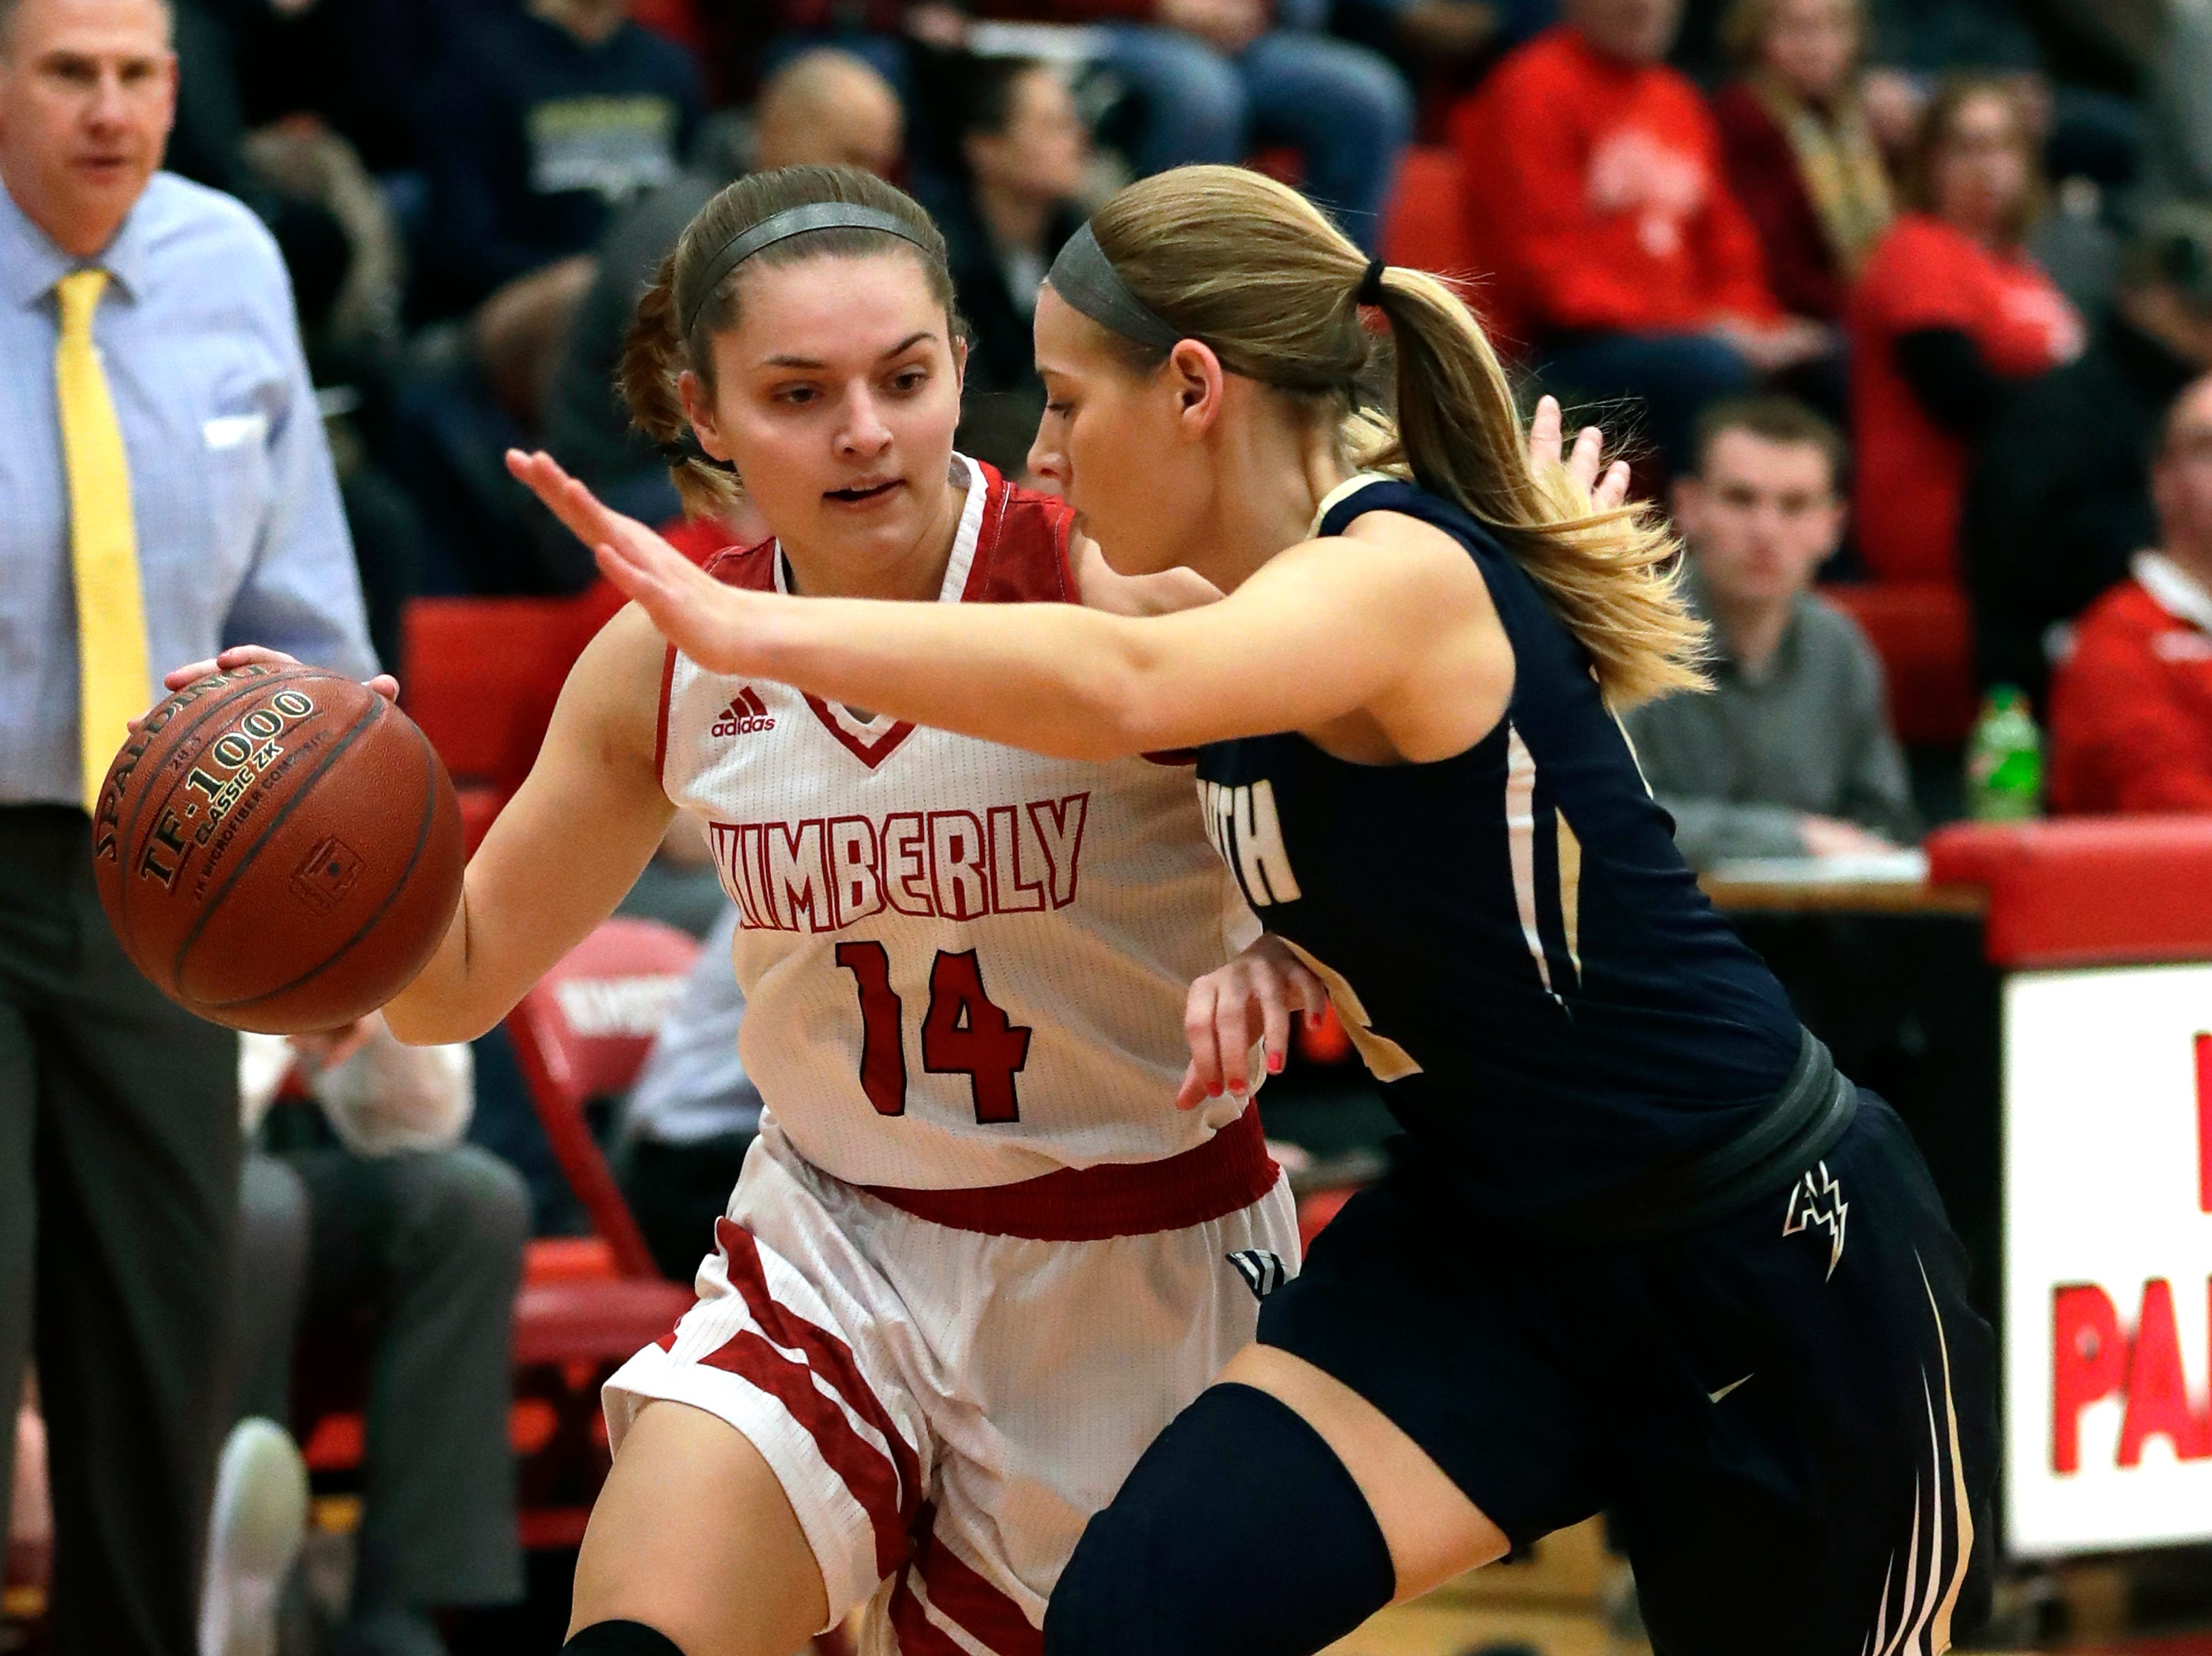 Kimberly High School's Taylor Hietpas (14) drives to the basket against Appleton North High School's Teagan Prusinski (12) during their girls basketball game Monday, February 11, 2019, in Kimberly, Wis. Dan Powers/USA TODAY NETWORK-Wisconsin